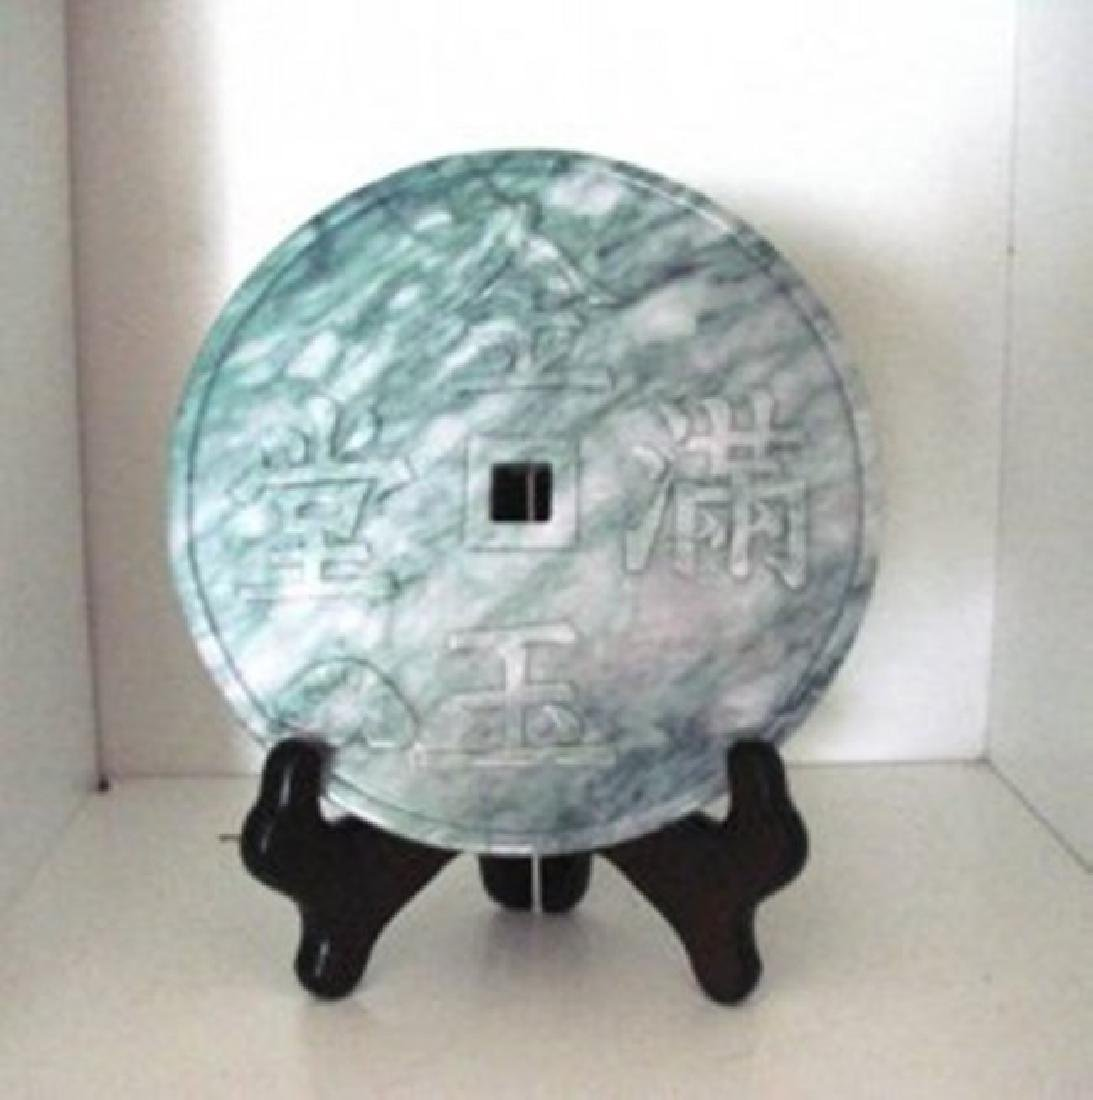 19th Century Jade Hand Carved Coin Weight: 2.3 pounds - 2